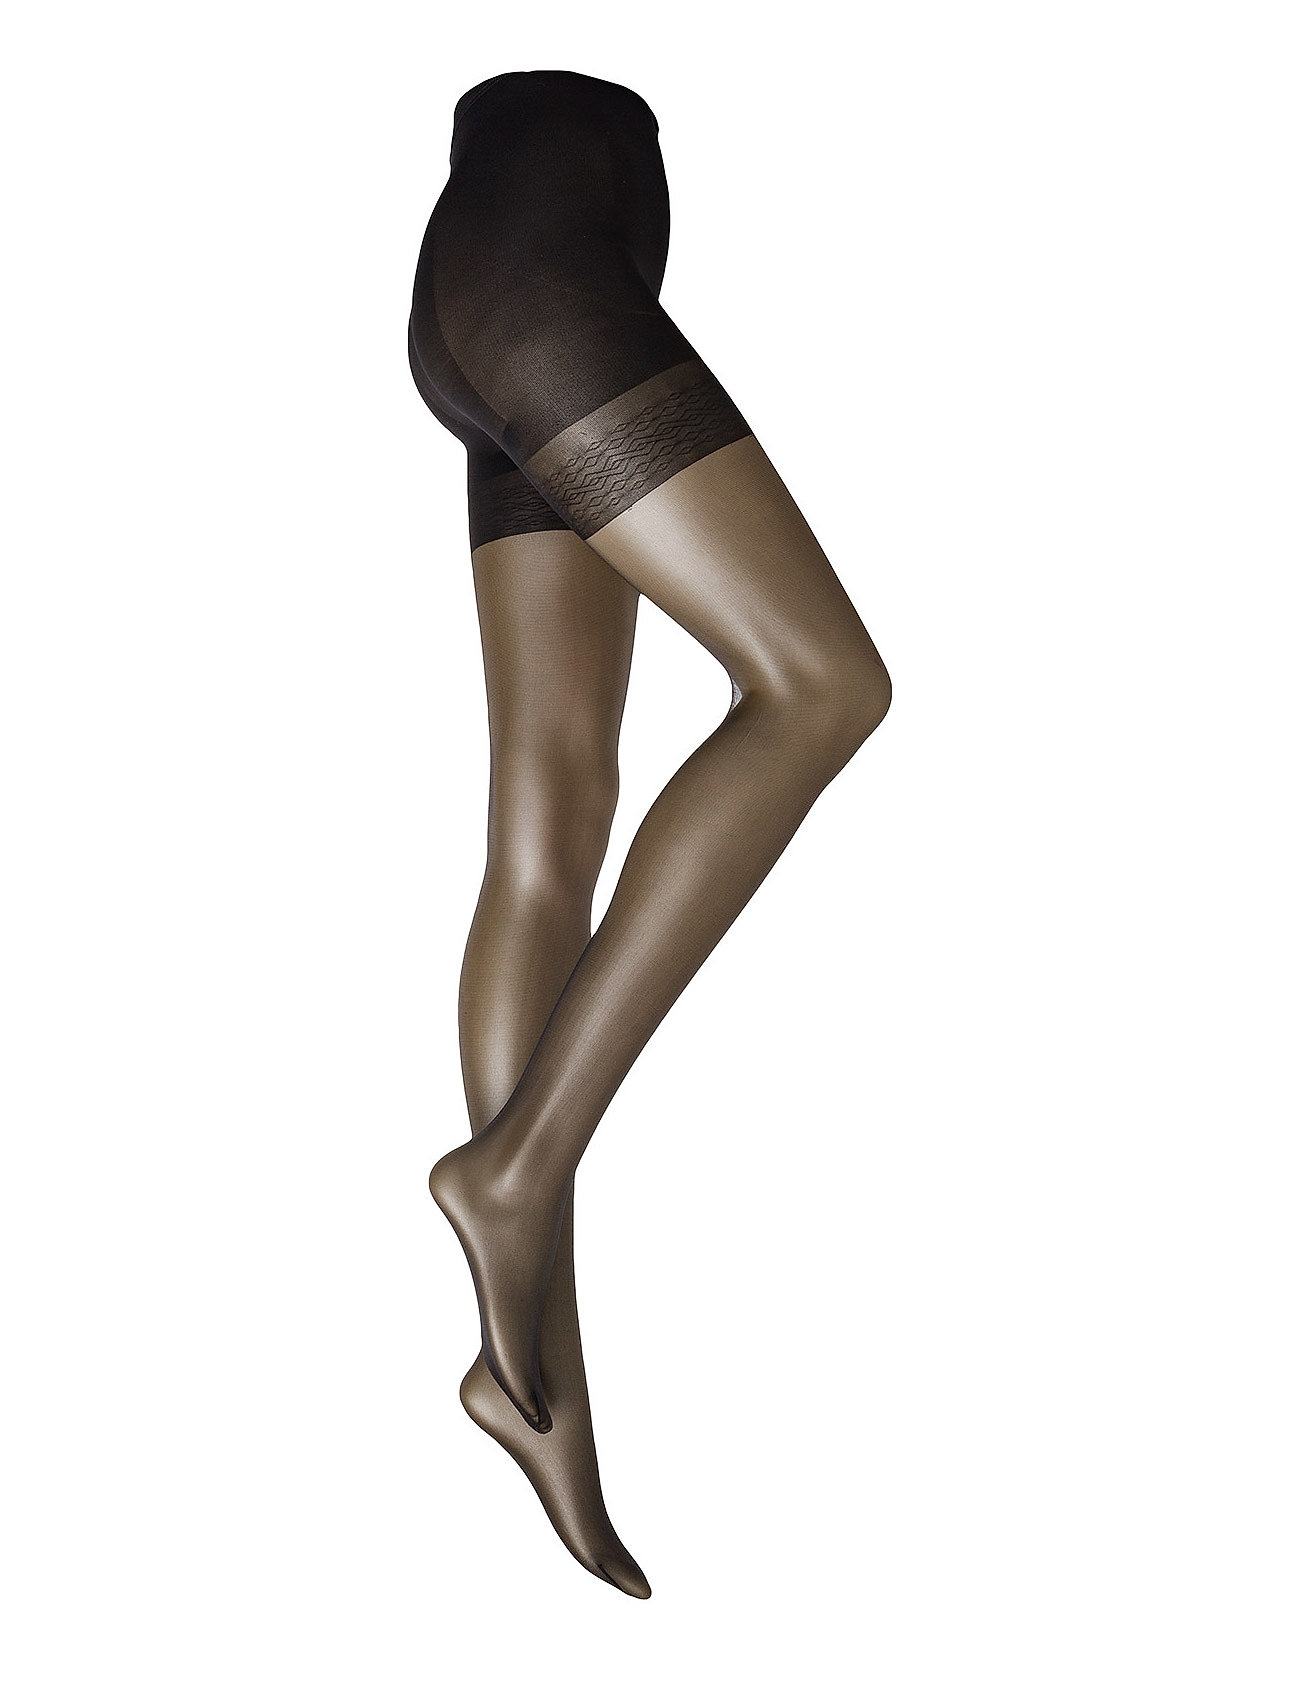 Vogue Ladies den pantyhose, Silhouette Control Top 20den - BLACK